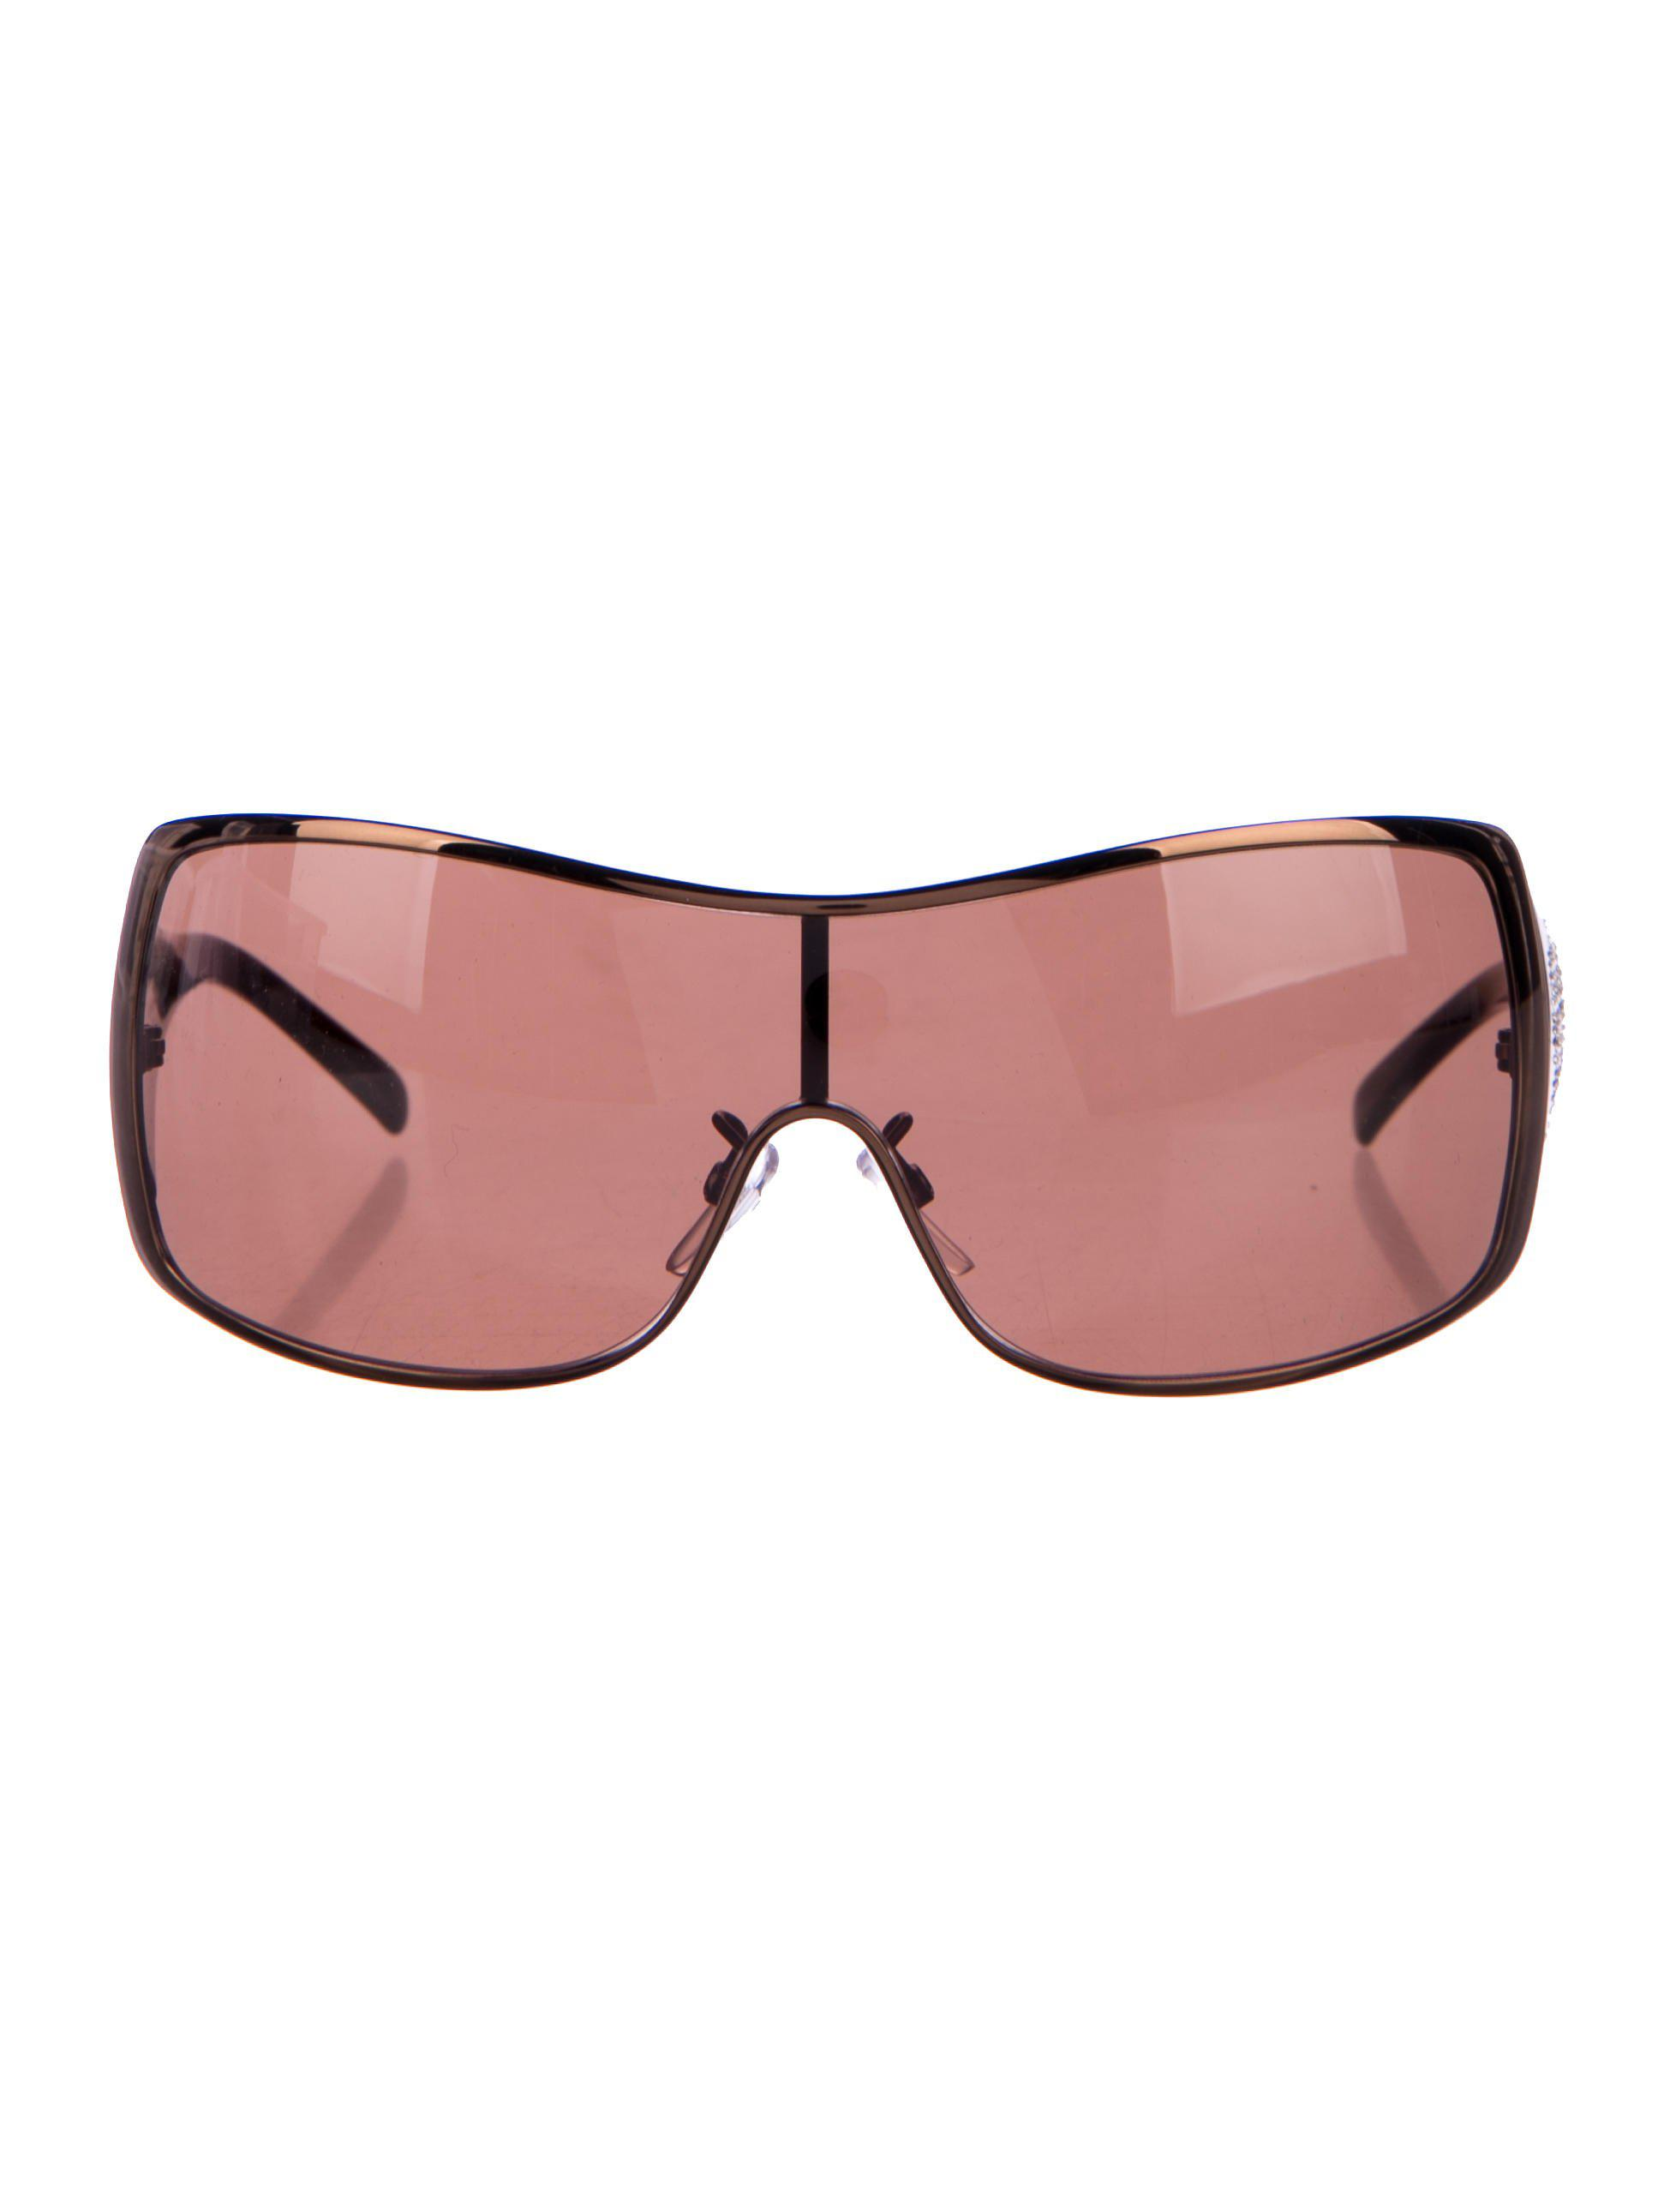 bb91843137 Lyst - Givenchy Tinted Shield Sunglasses in Brown